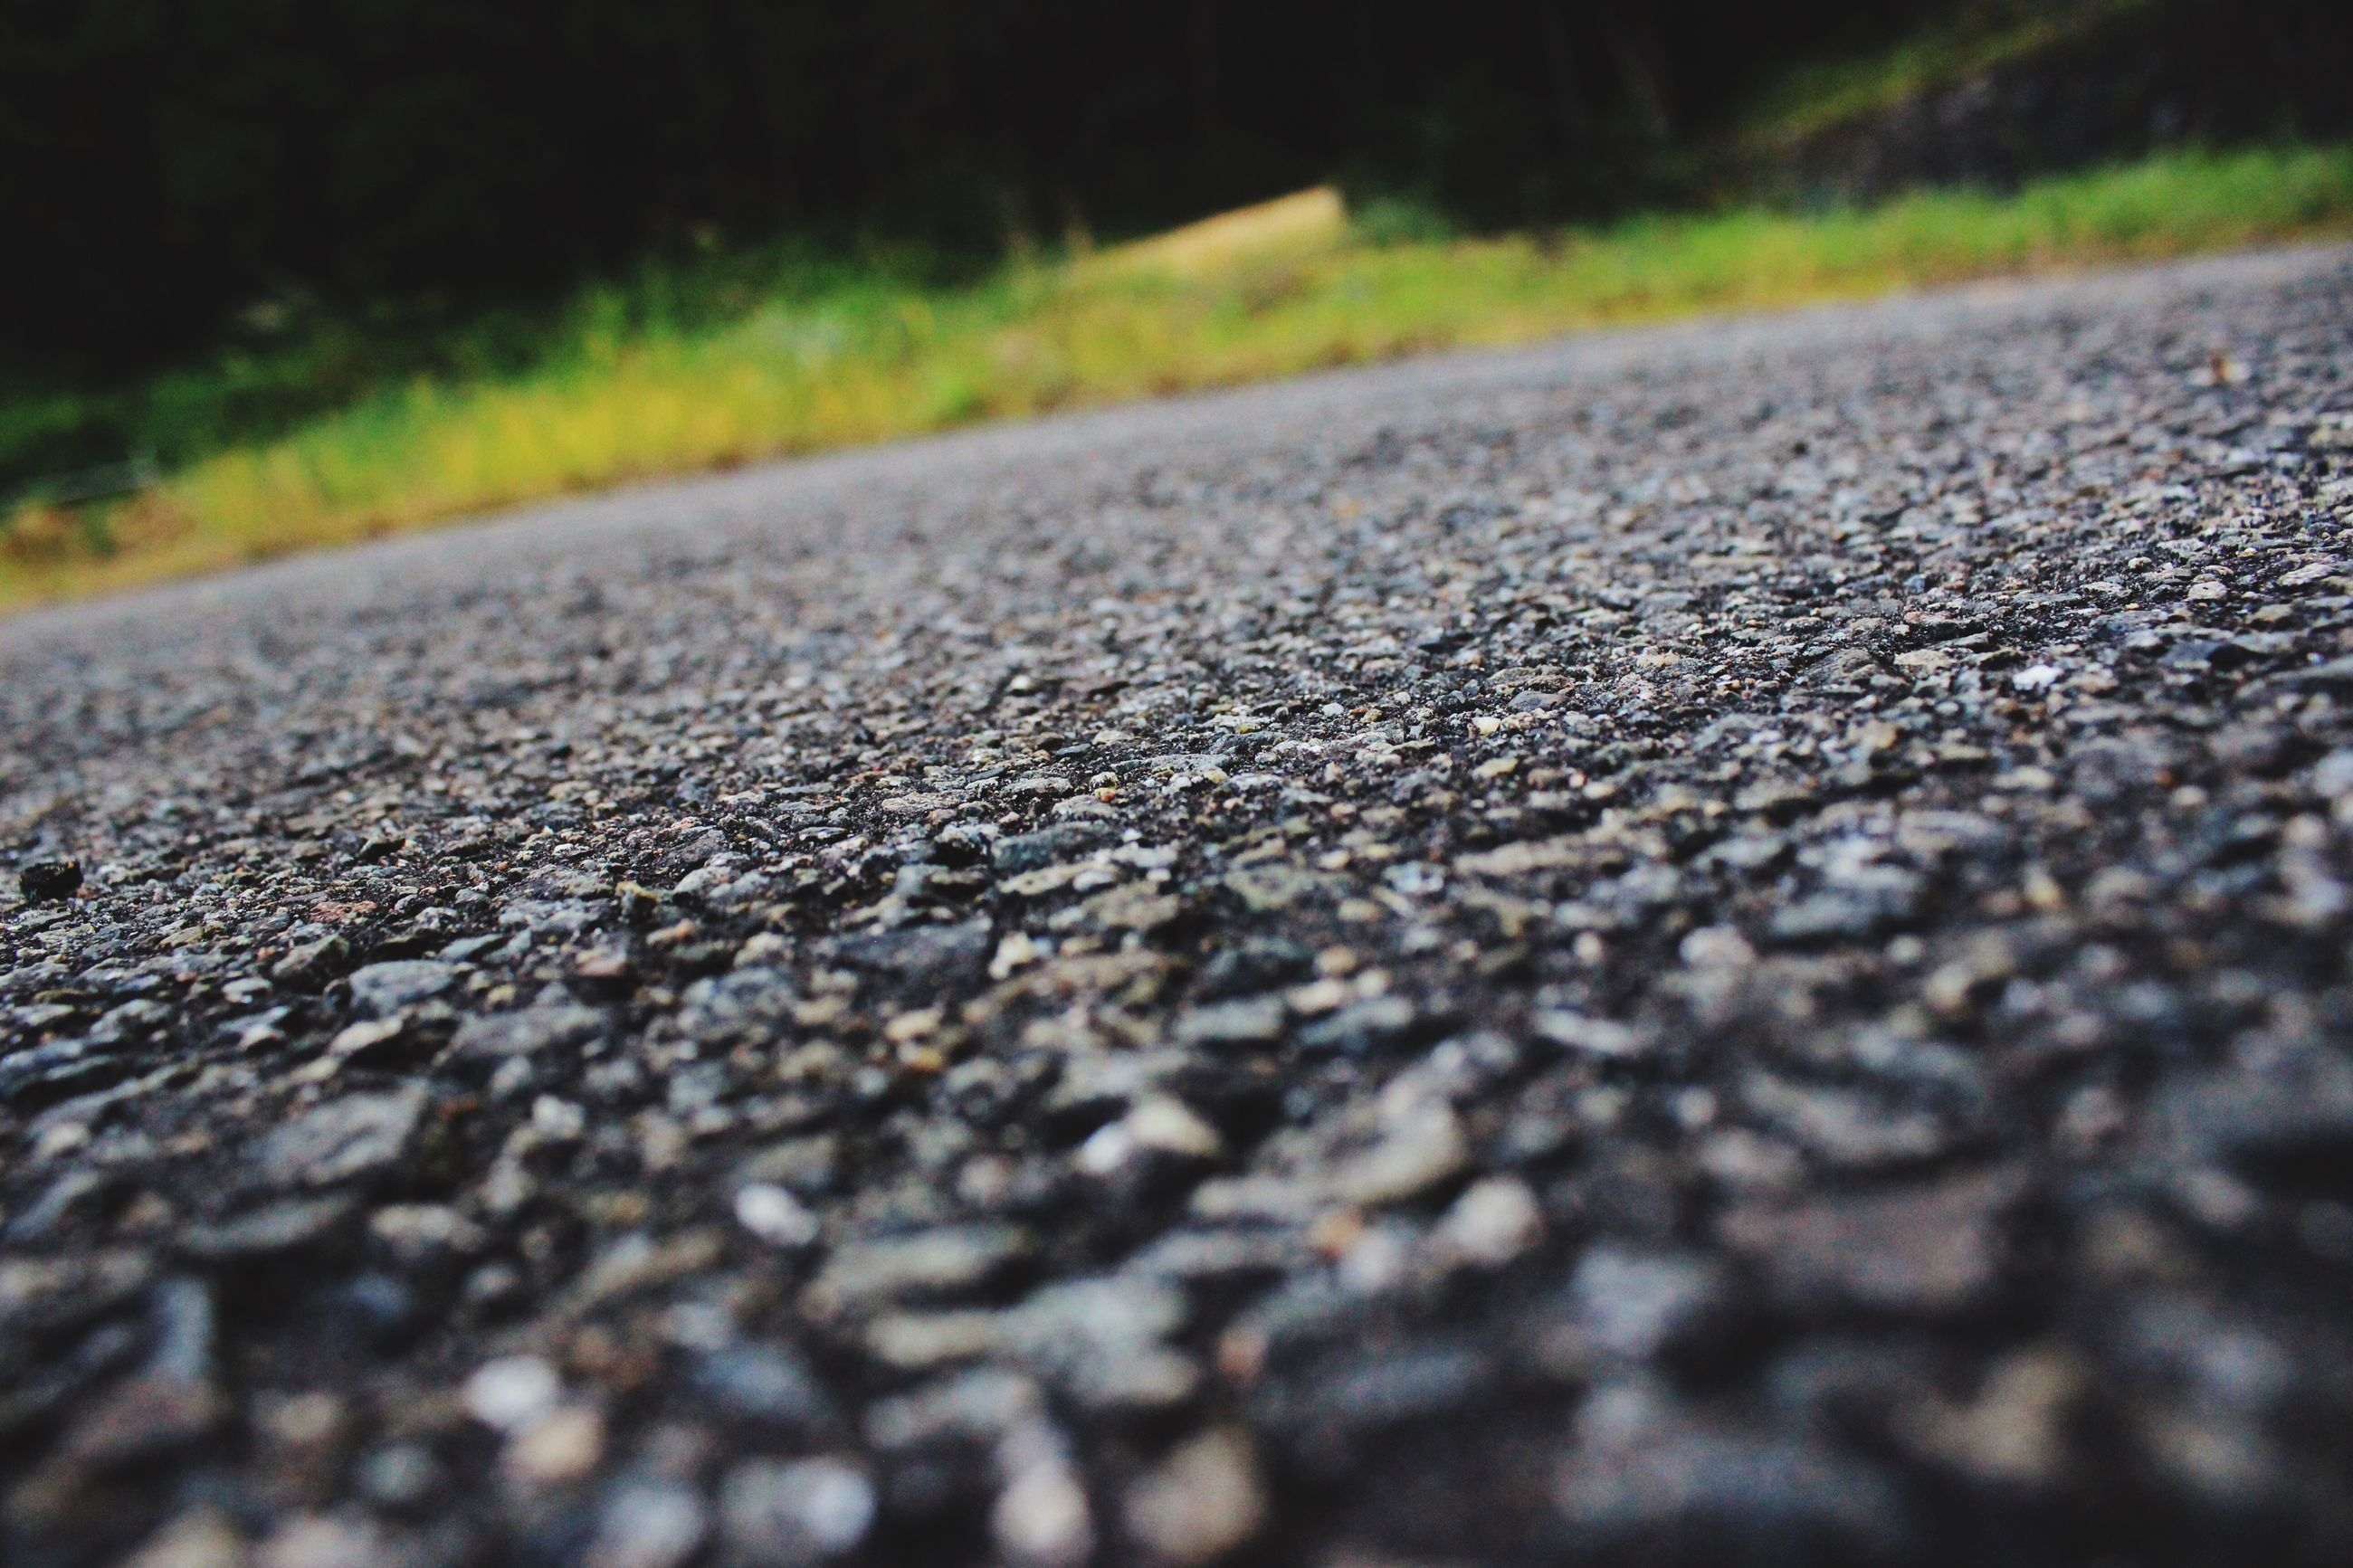 selective focus, nature, surface level, no people, asphalt, day, road, outdoors, transportation, the way forward, beauty in nature, close-up, pebble beach